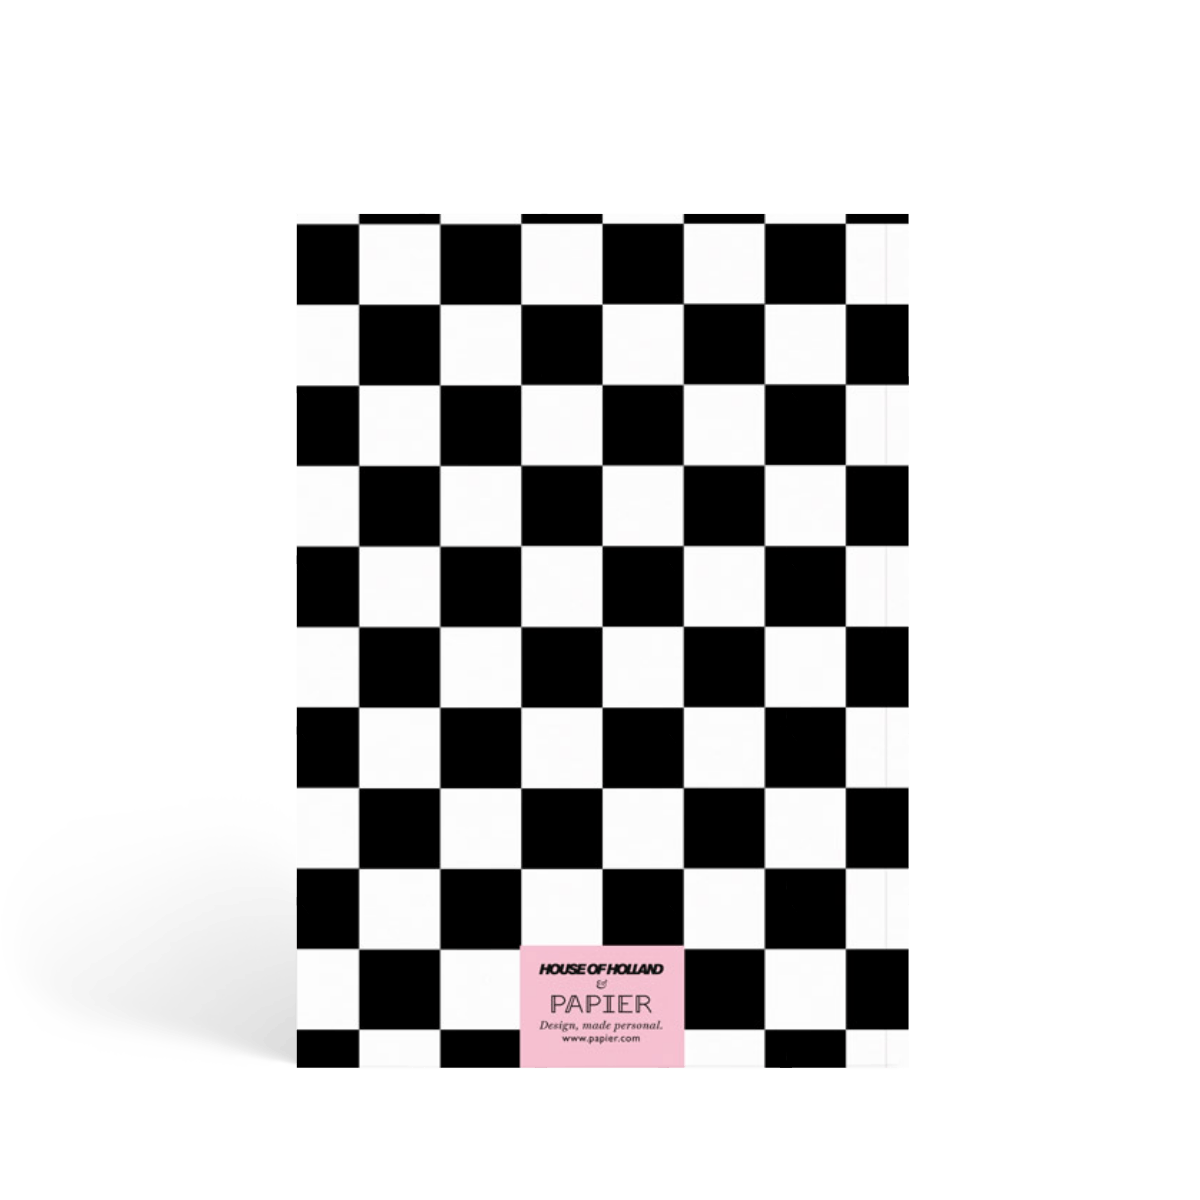 Https%3a%2f%2fwww.papier.com%2fproduct image%2f57179%2f5%2fcheckerboard 13733 back 1542370499.png?ixlib=rb 1.1